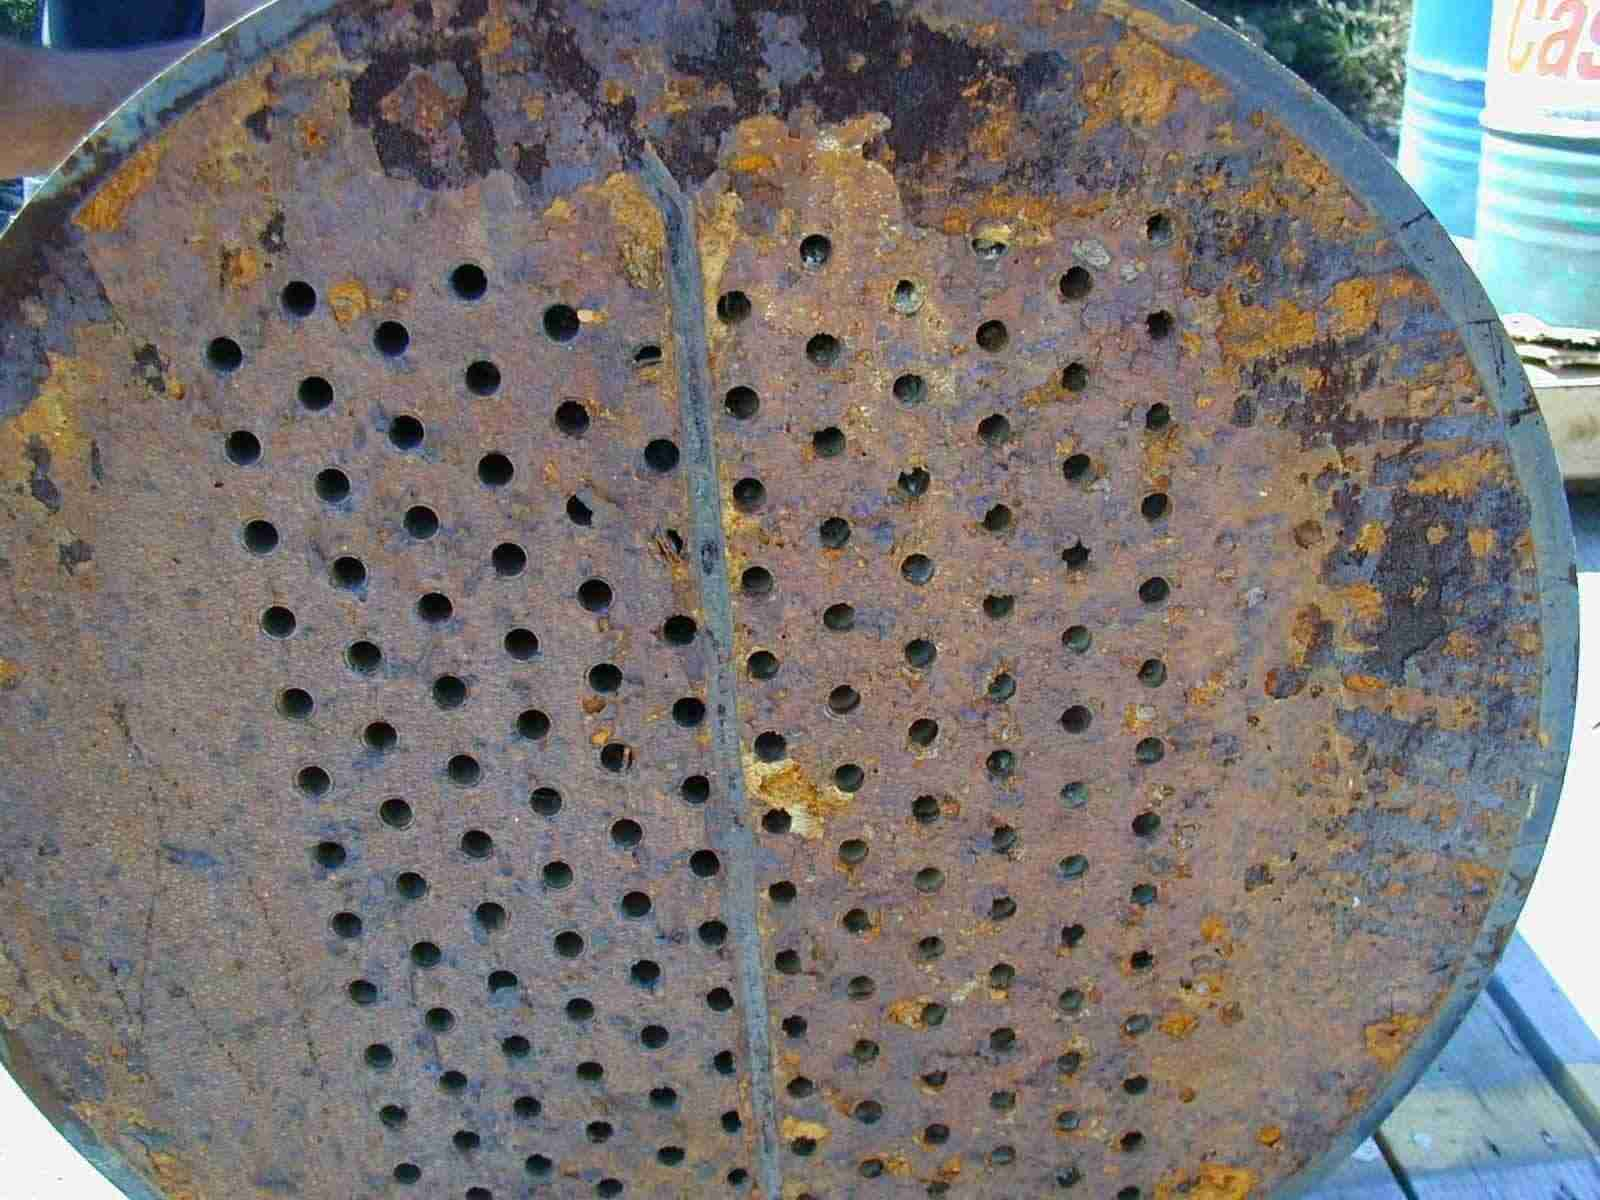 Corroded Condenser Tube Plate